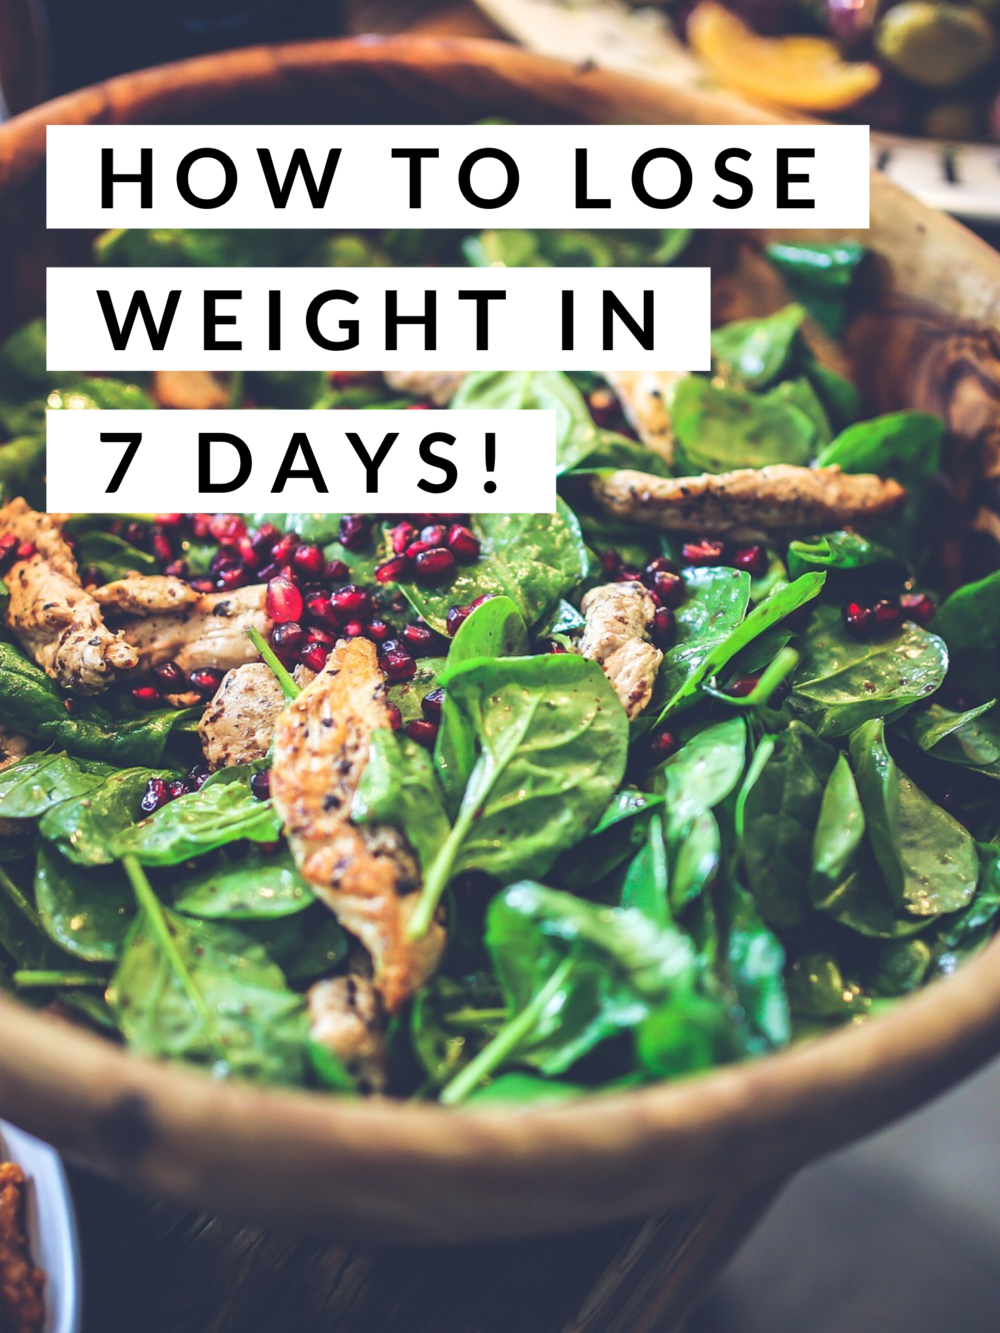 How-to-lose-weight-in-7-days.PNG